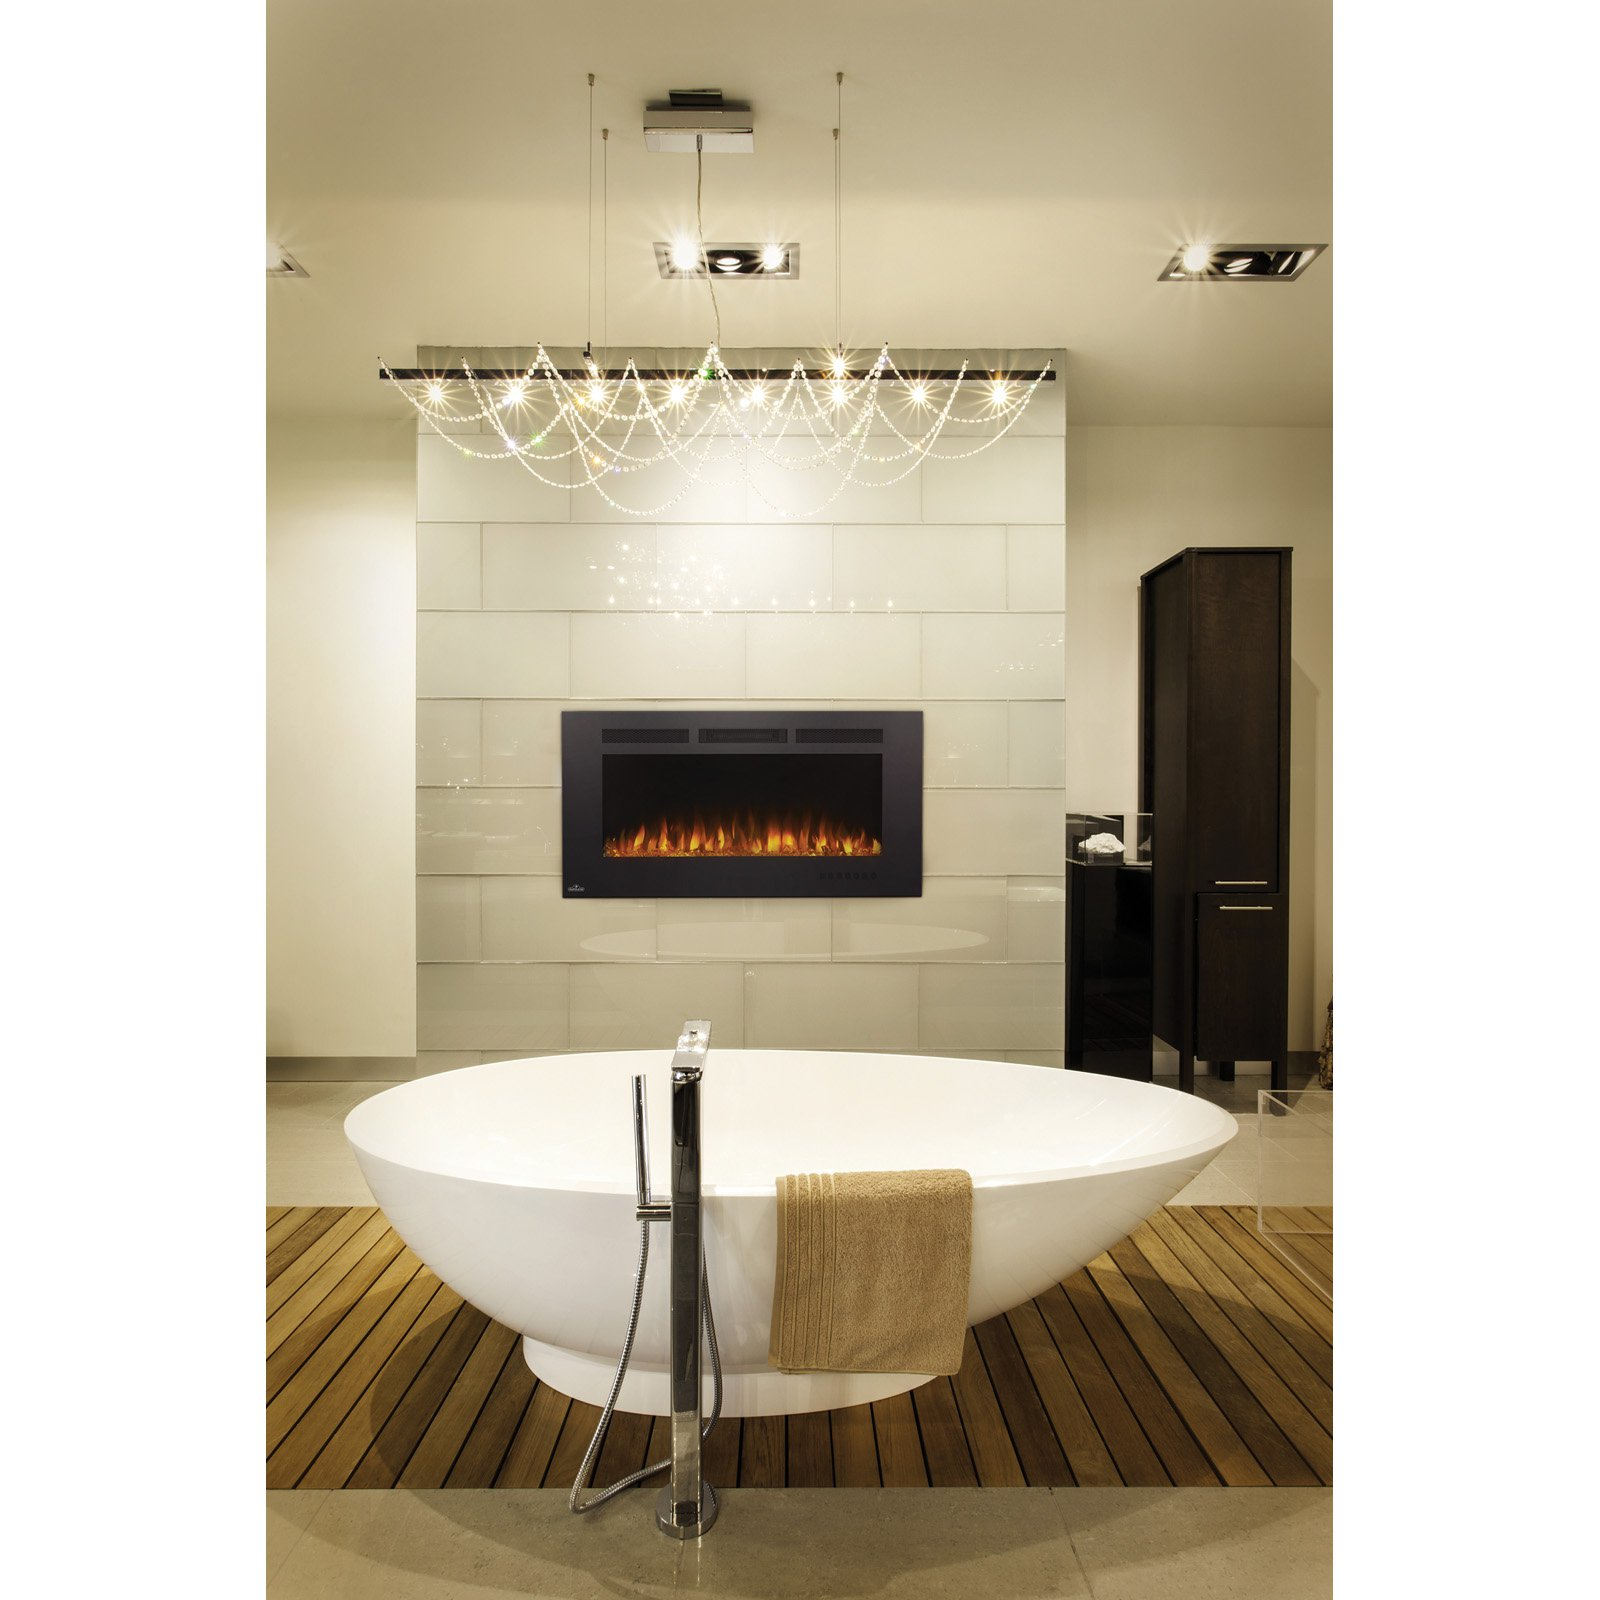 Napoleon Allure Phantom Linear Wall Mount Electric Fireplace with Mesh Screen